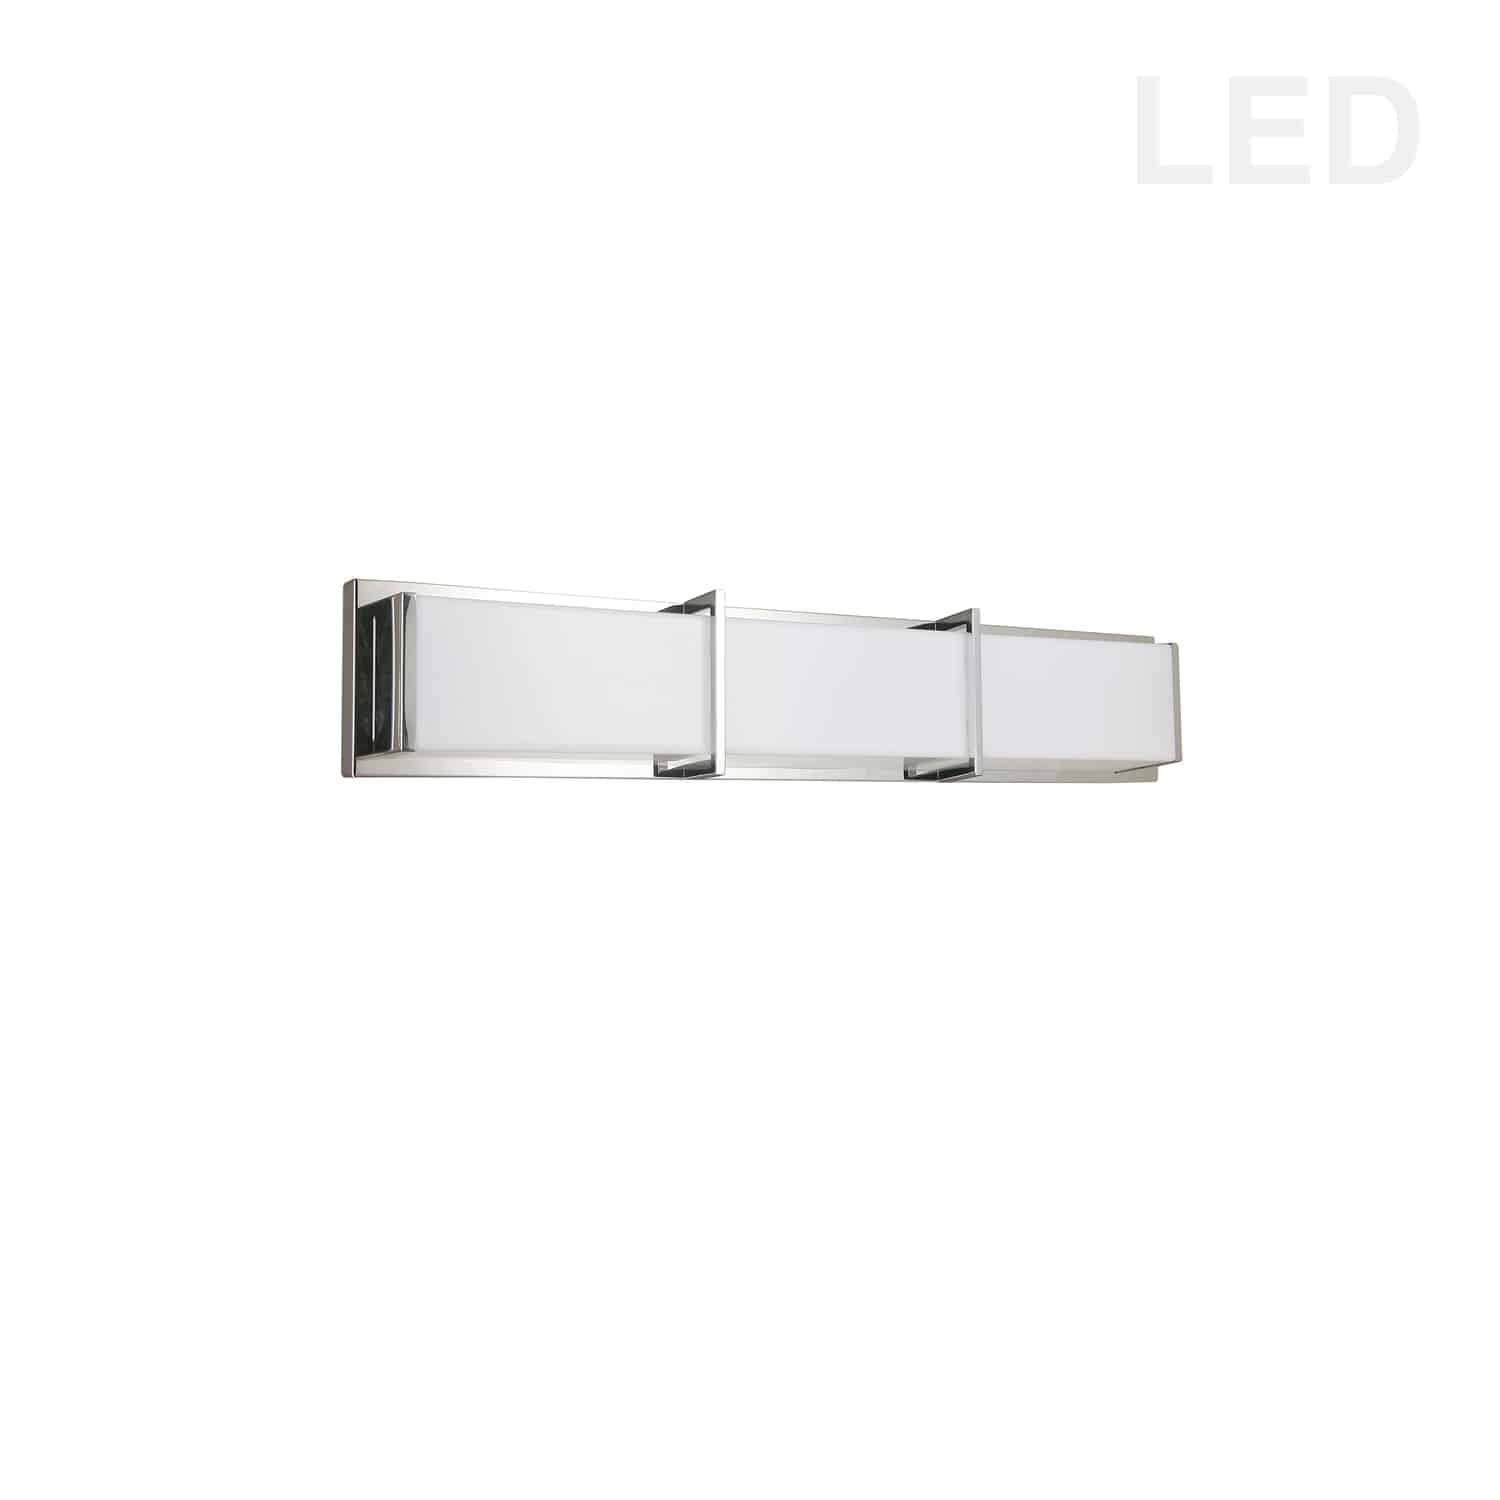 36W Polished Chrome Vanity Light w/ White Acrylic Diffuser